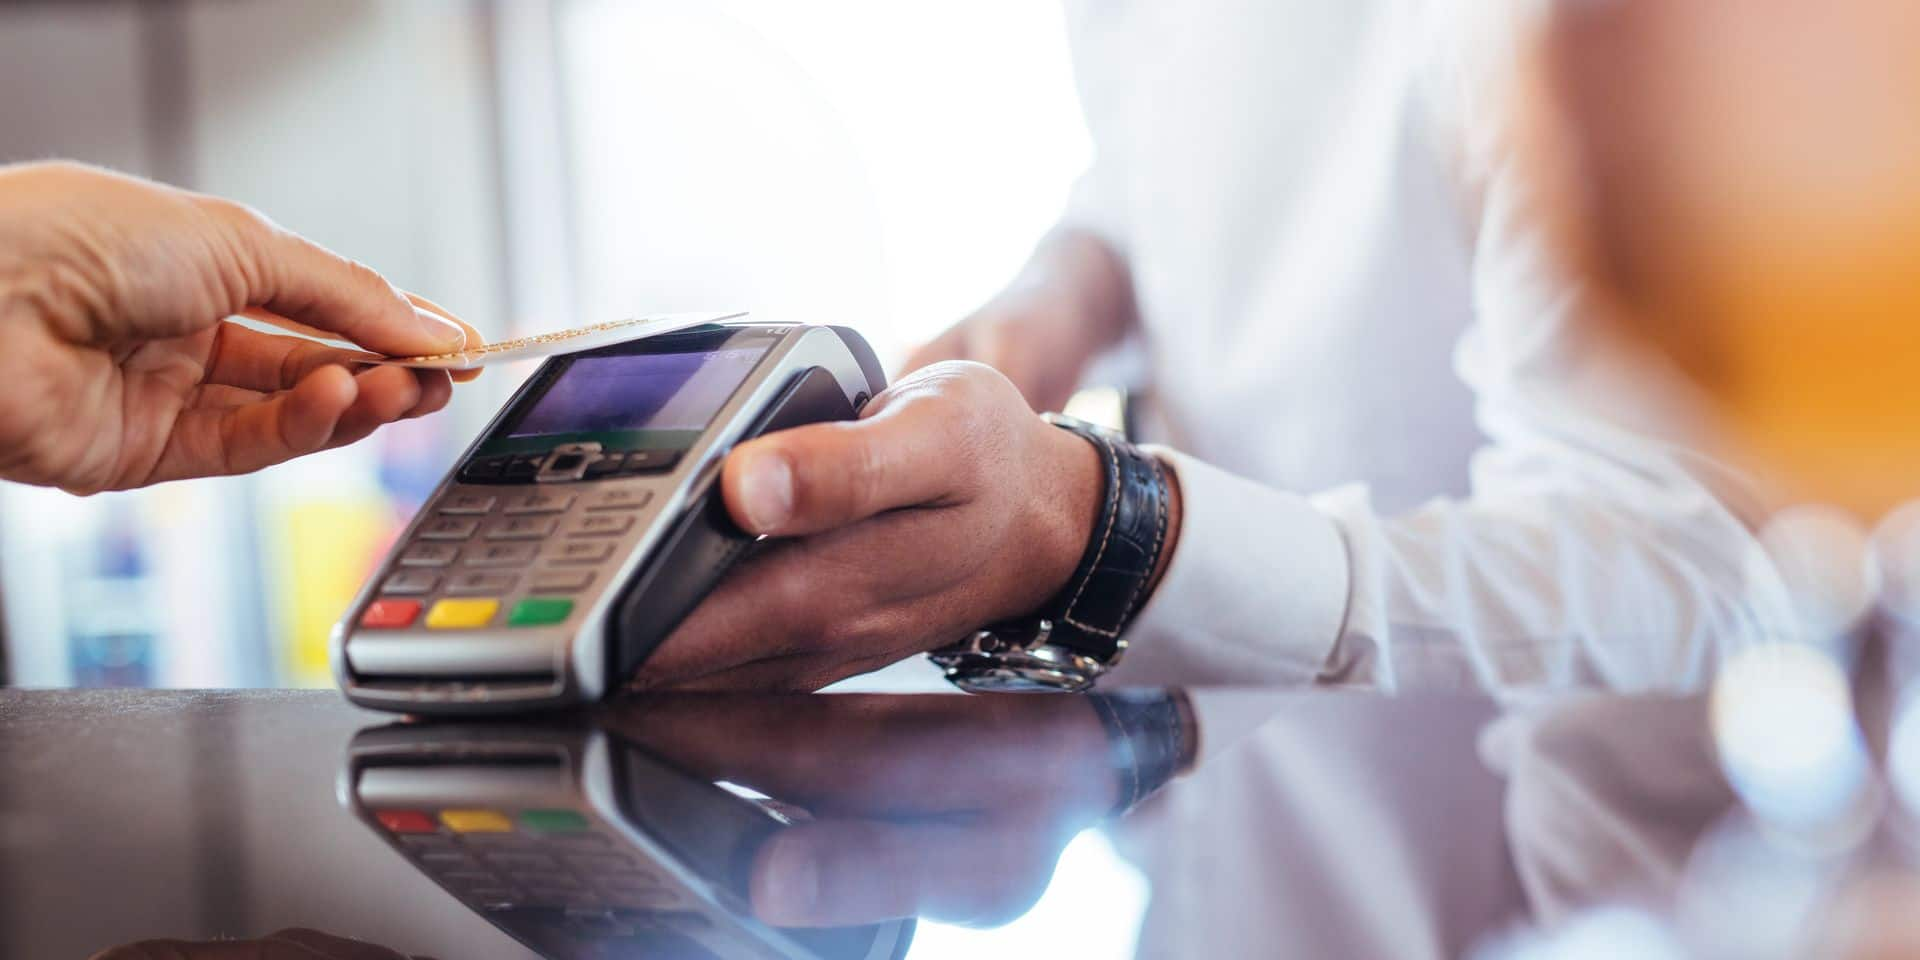 Hand,Of,Customer,Paying,With,Contactless,Credit,Card,With,Nfc